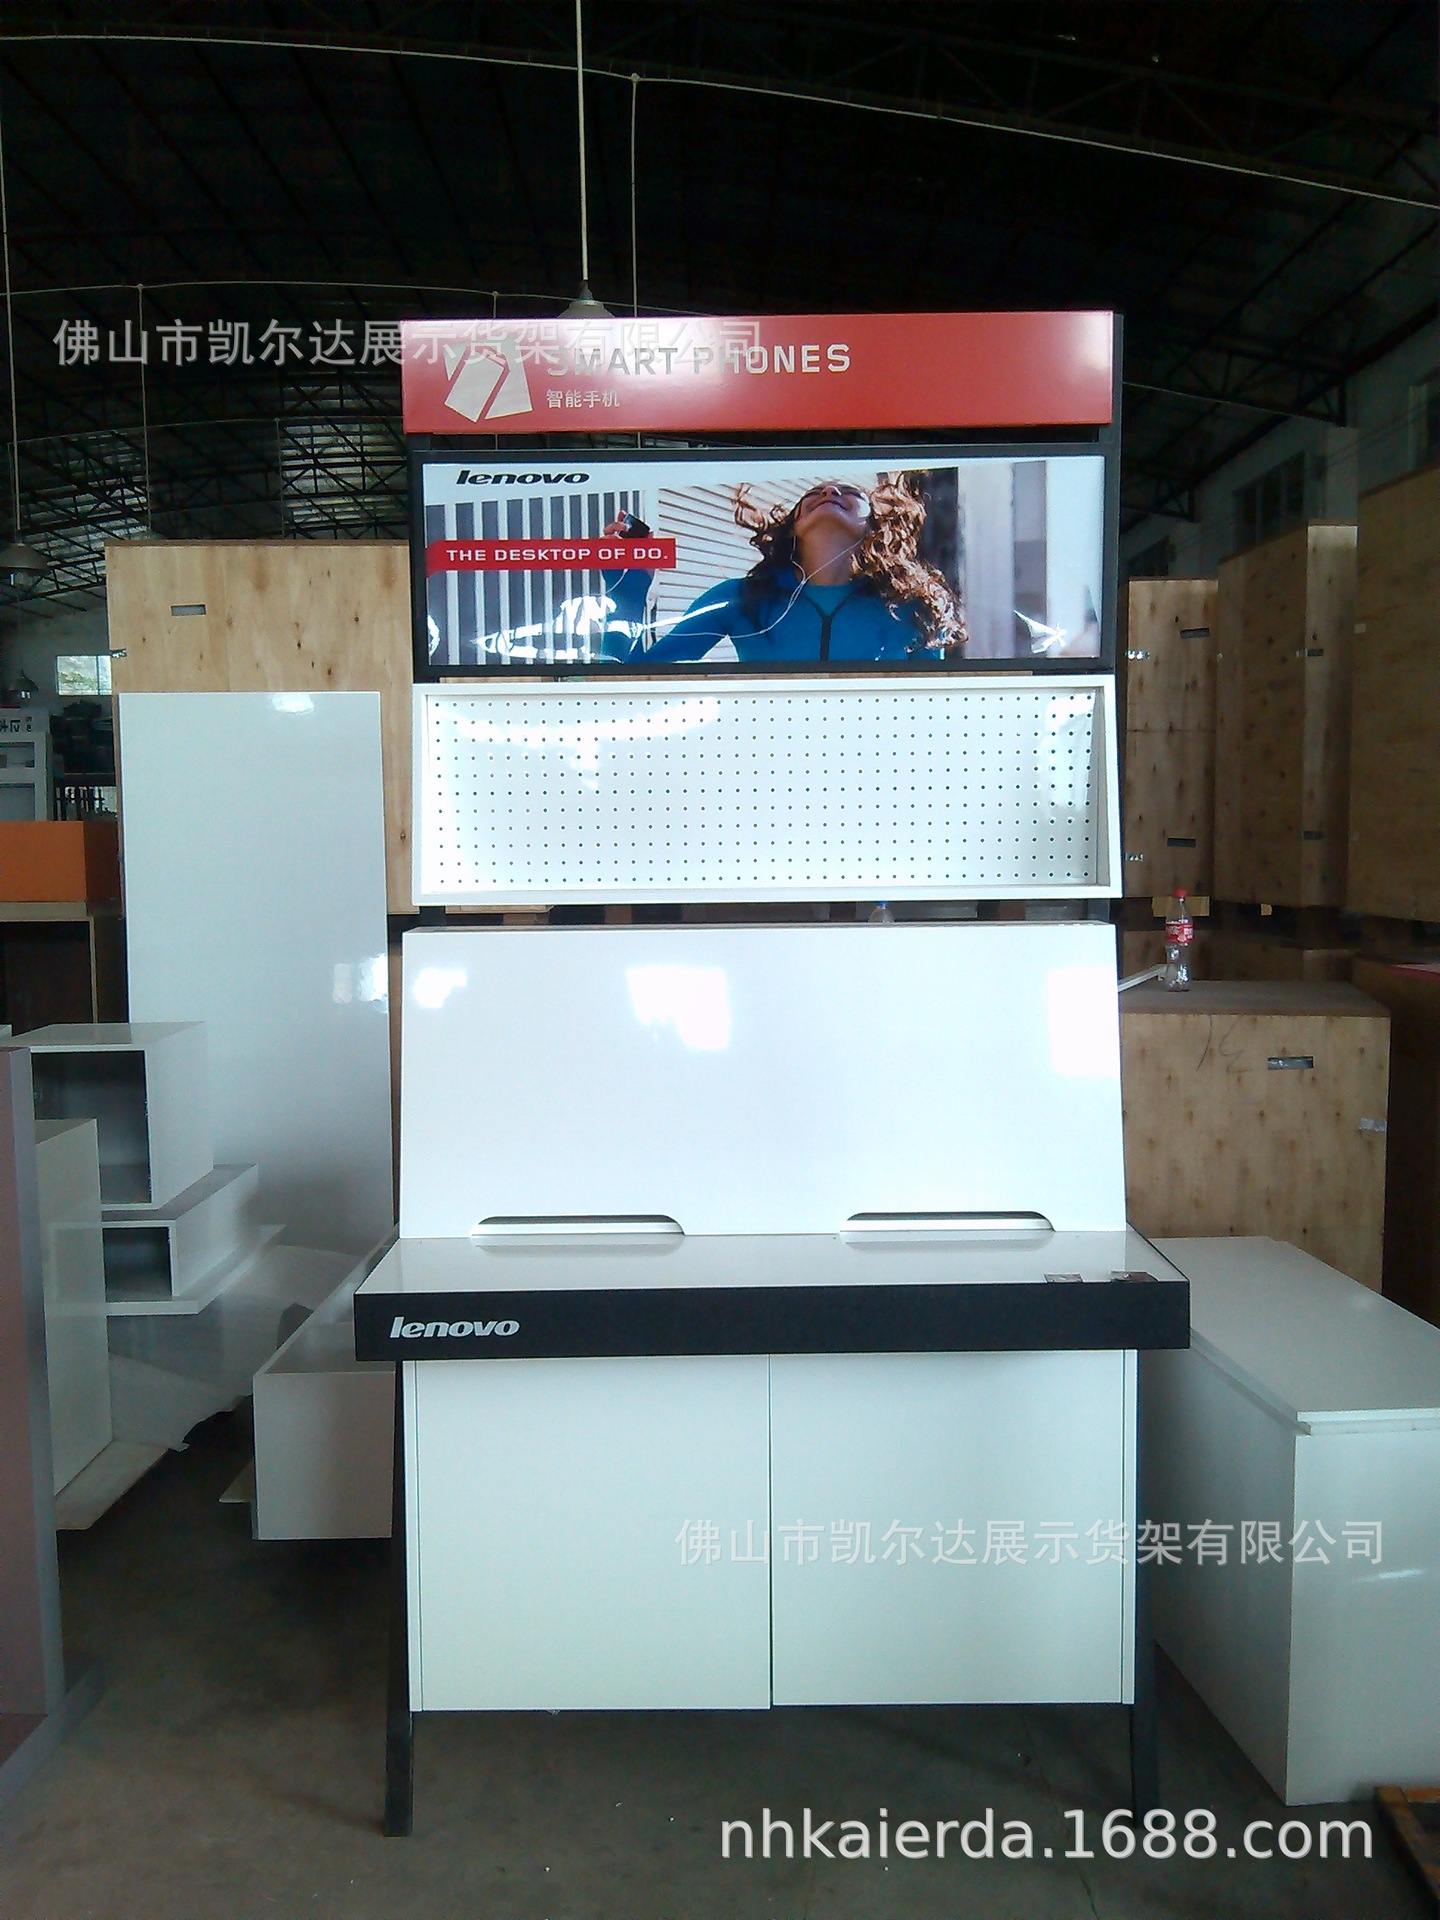 Foshan City In Chest Freezer Cabinet Lenovo Computer Display Cabinet Optimized Showcase Feature Wall In Island Rack